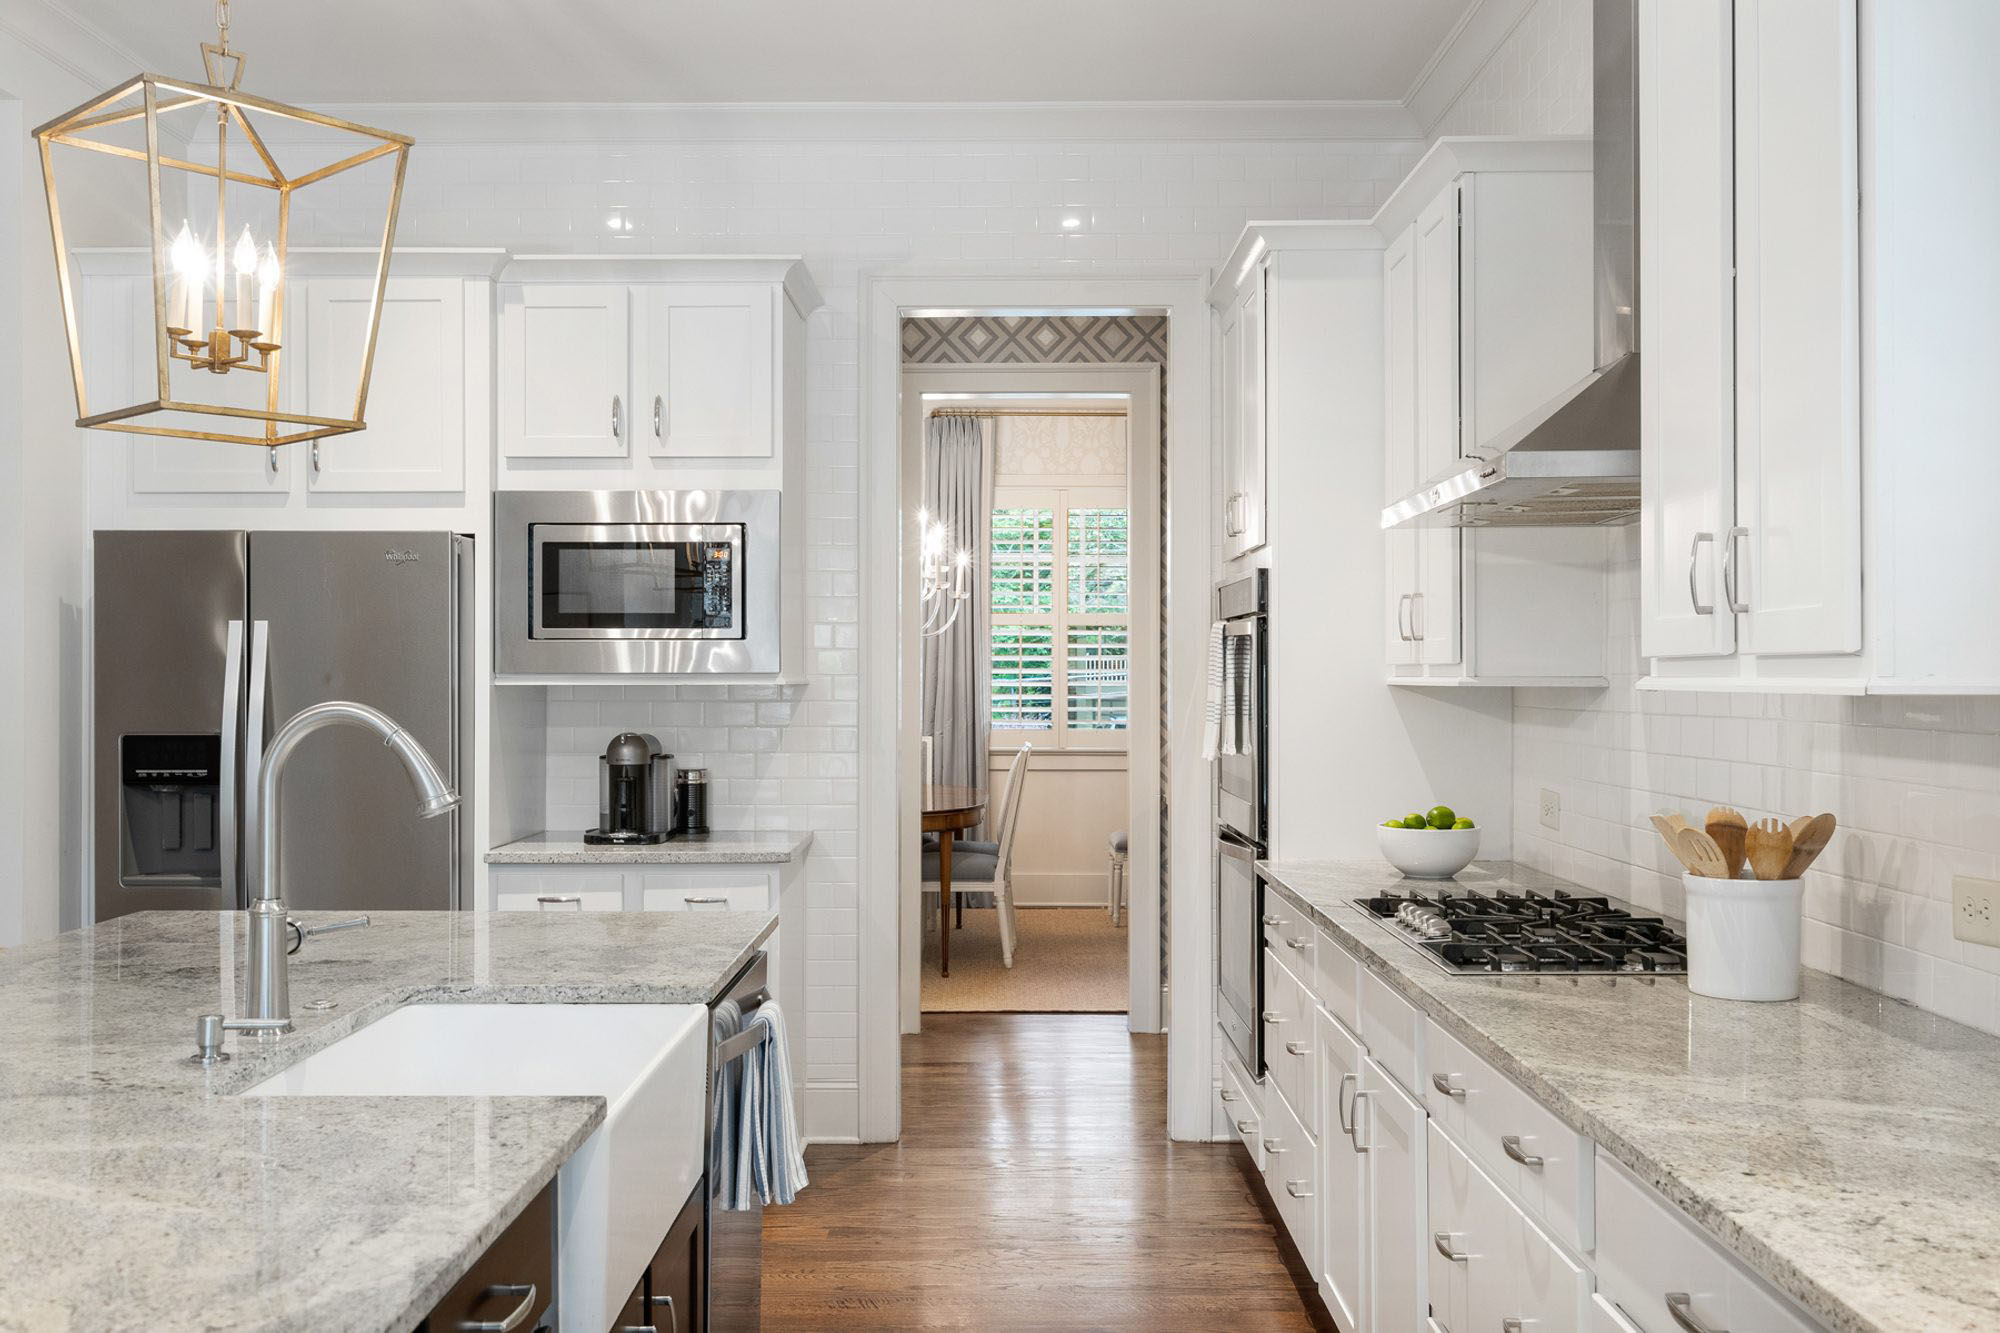 White farm house sink in a center island with black cabinets and gray granite countertops.